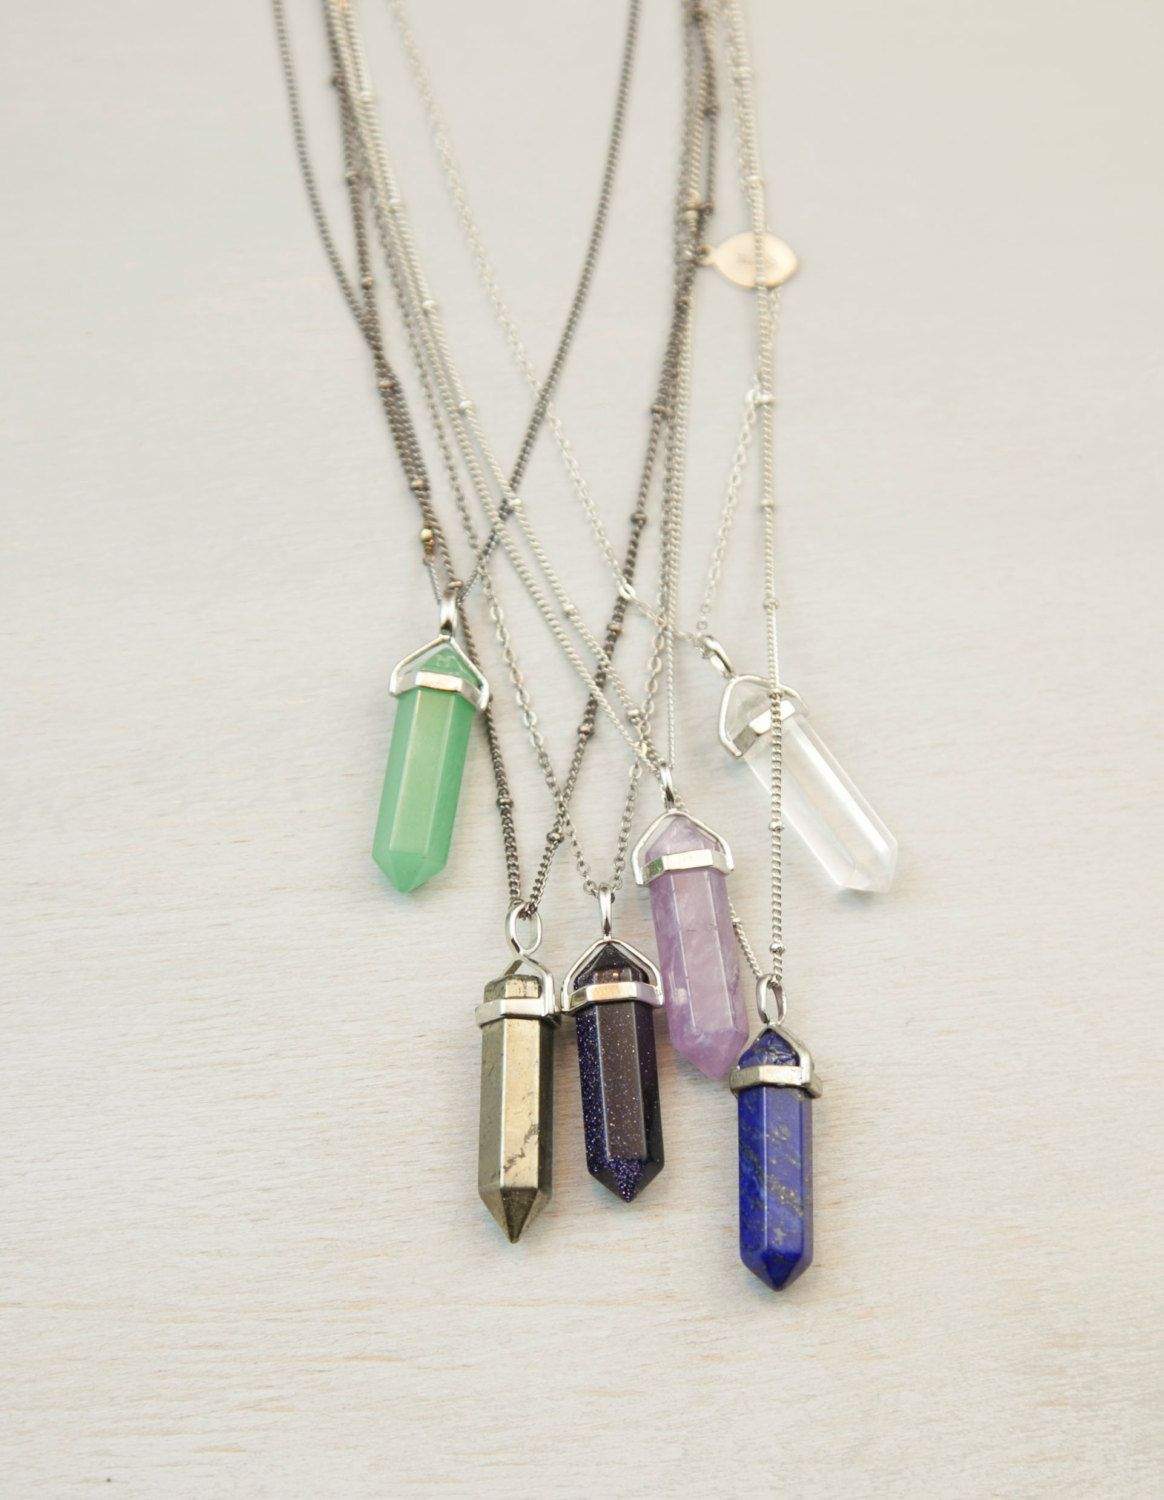 Tumblr my stylecessorized pinterest crystals jewelery crystal point long necklace long chakra crystal pendant necklace natural stone crystal point with extra long necklace option on wanelo mozeypictures Gallery